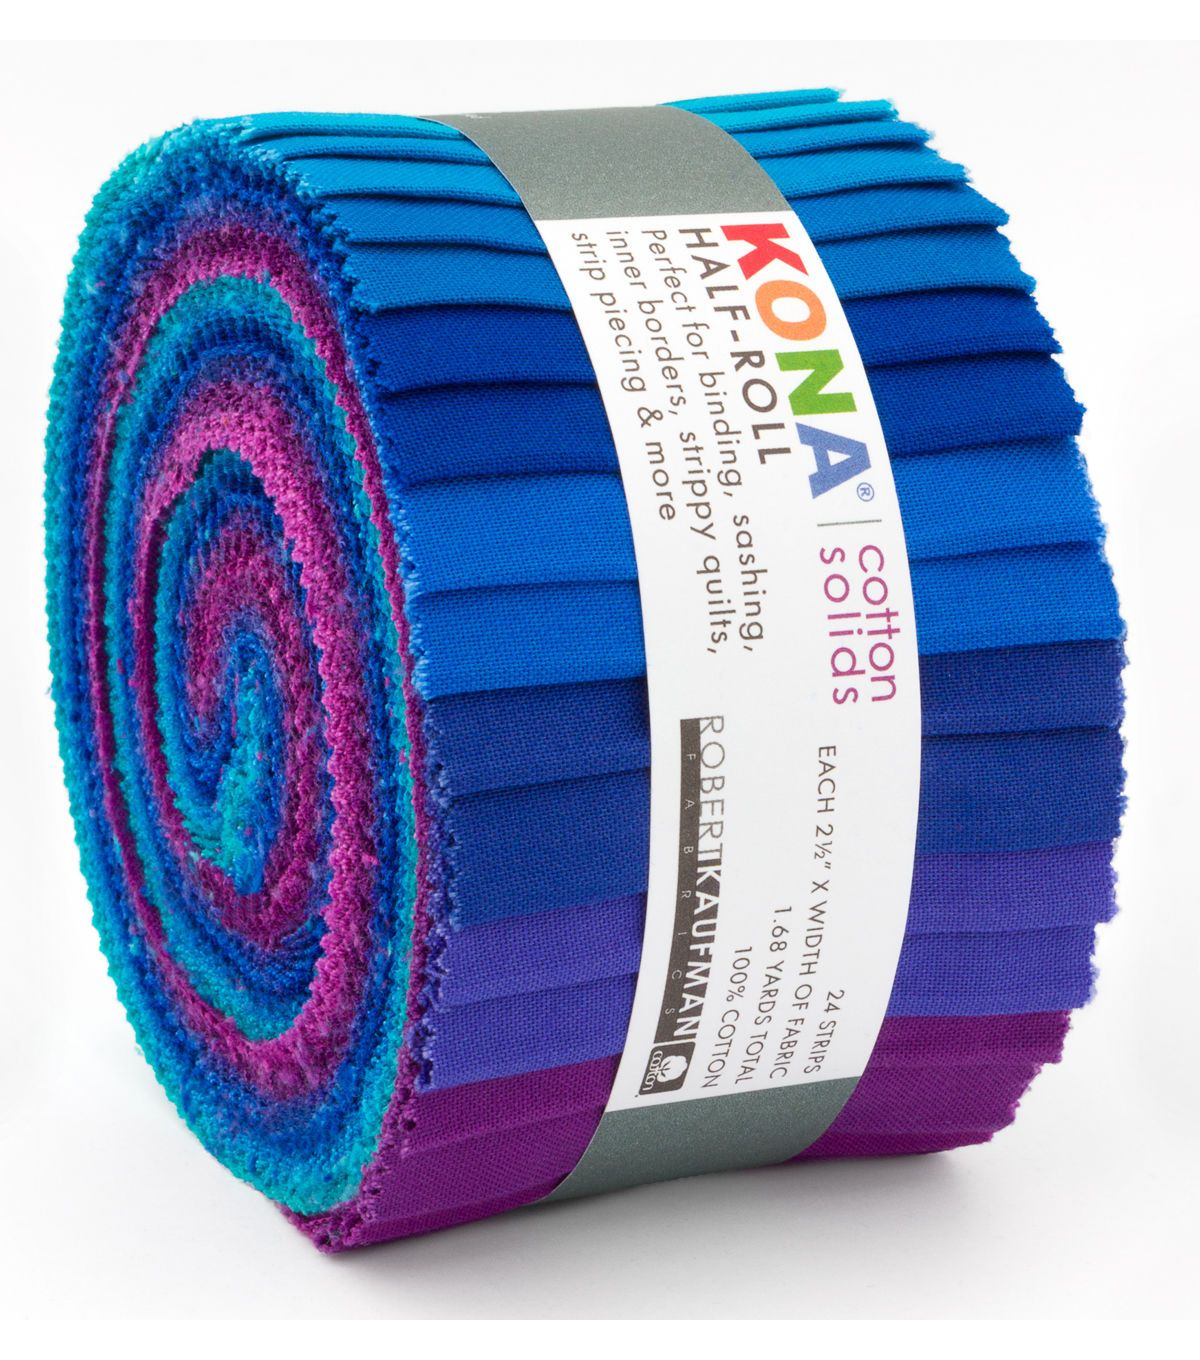 Kona Fabric Roll-Peacock | Products | Fabric, Joanns fabric, crafts